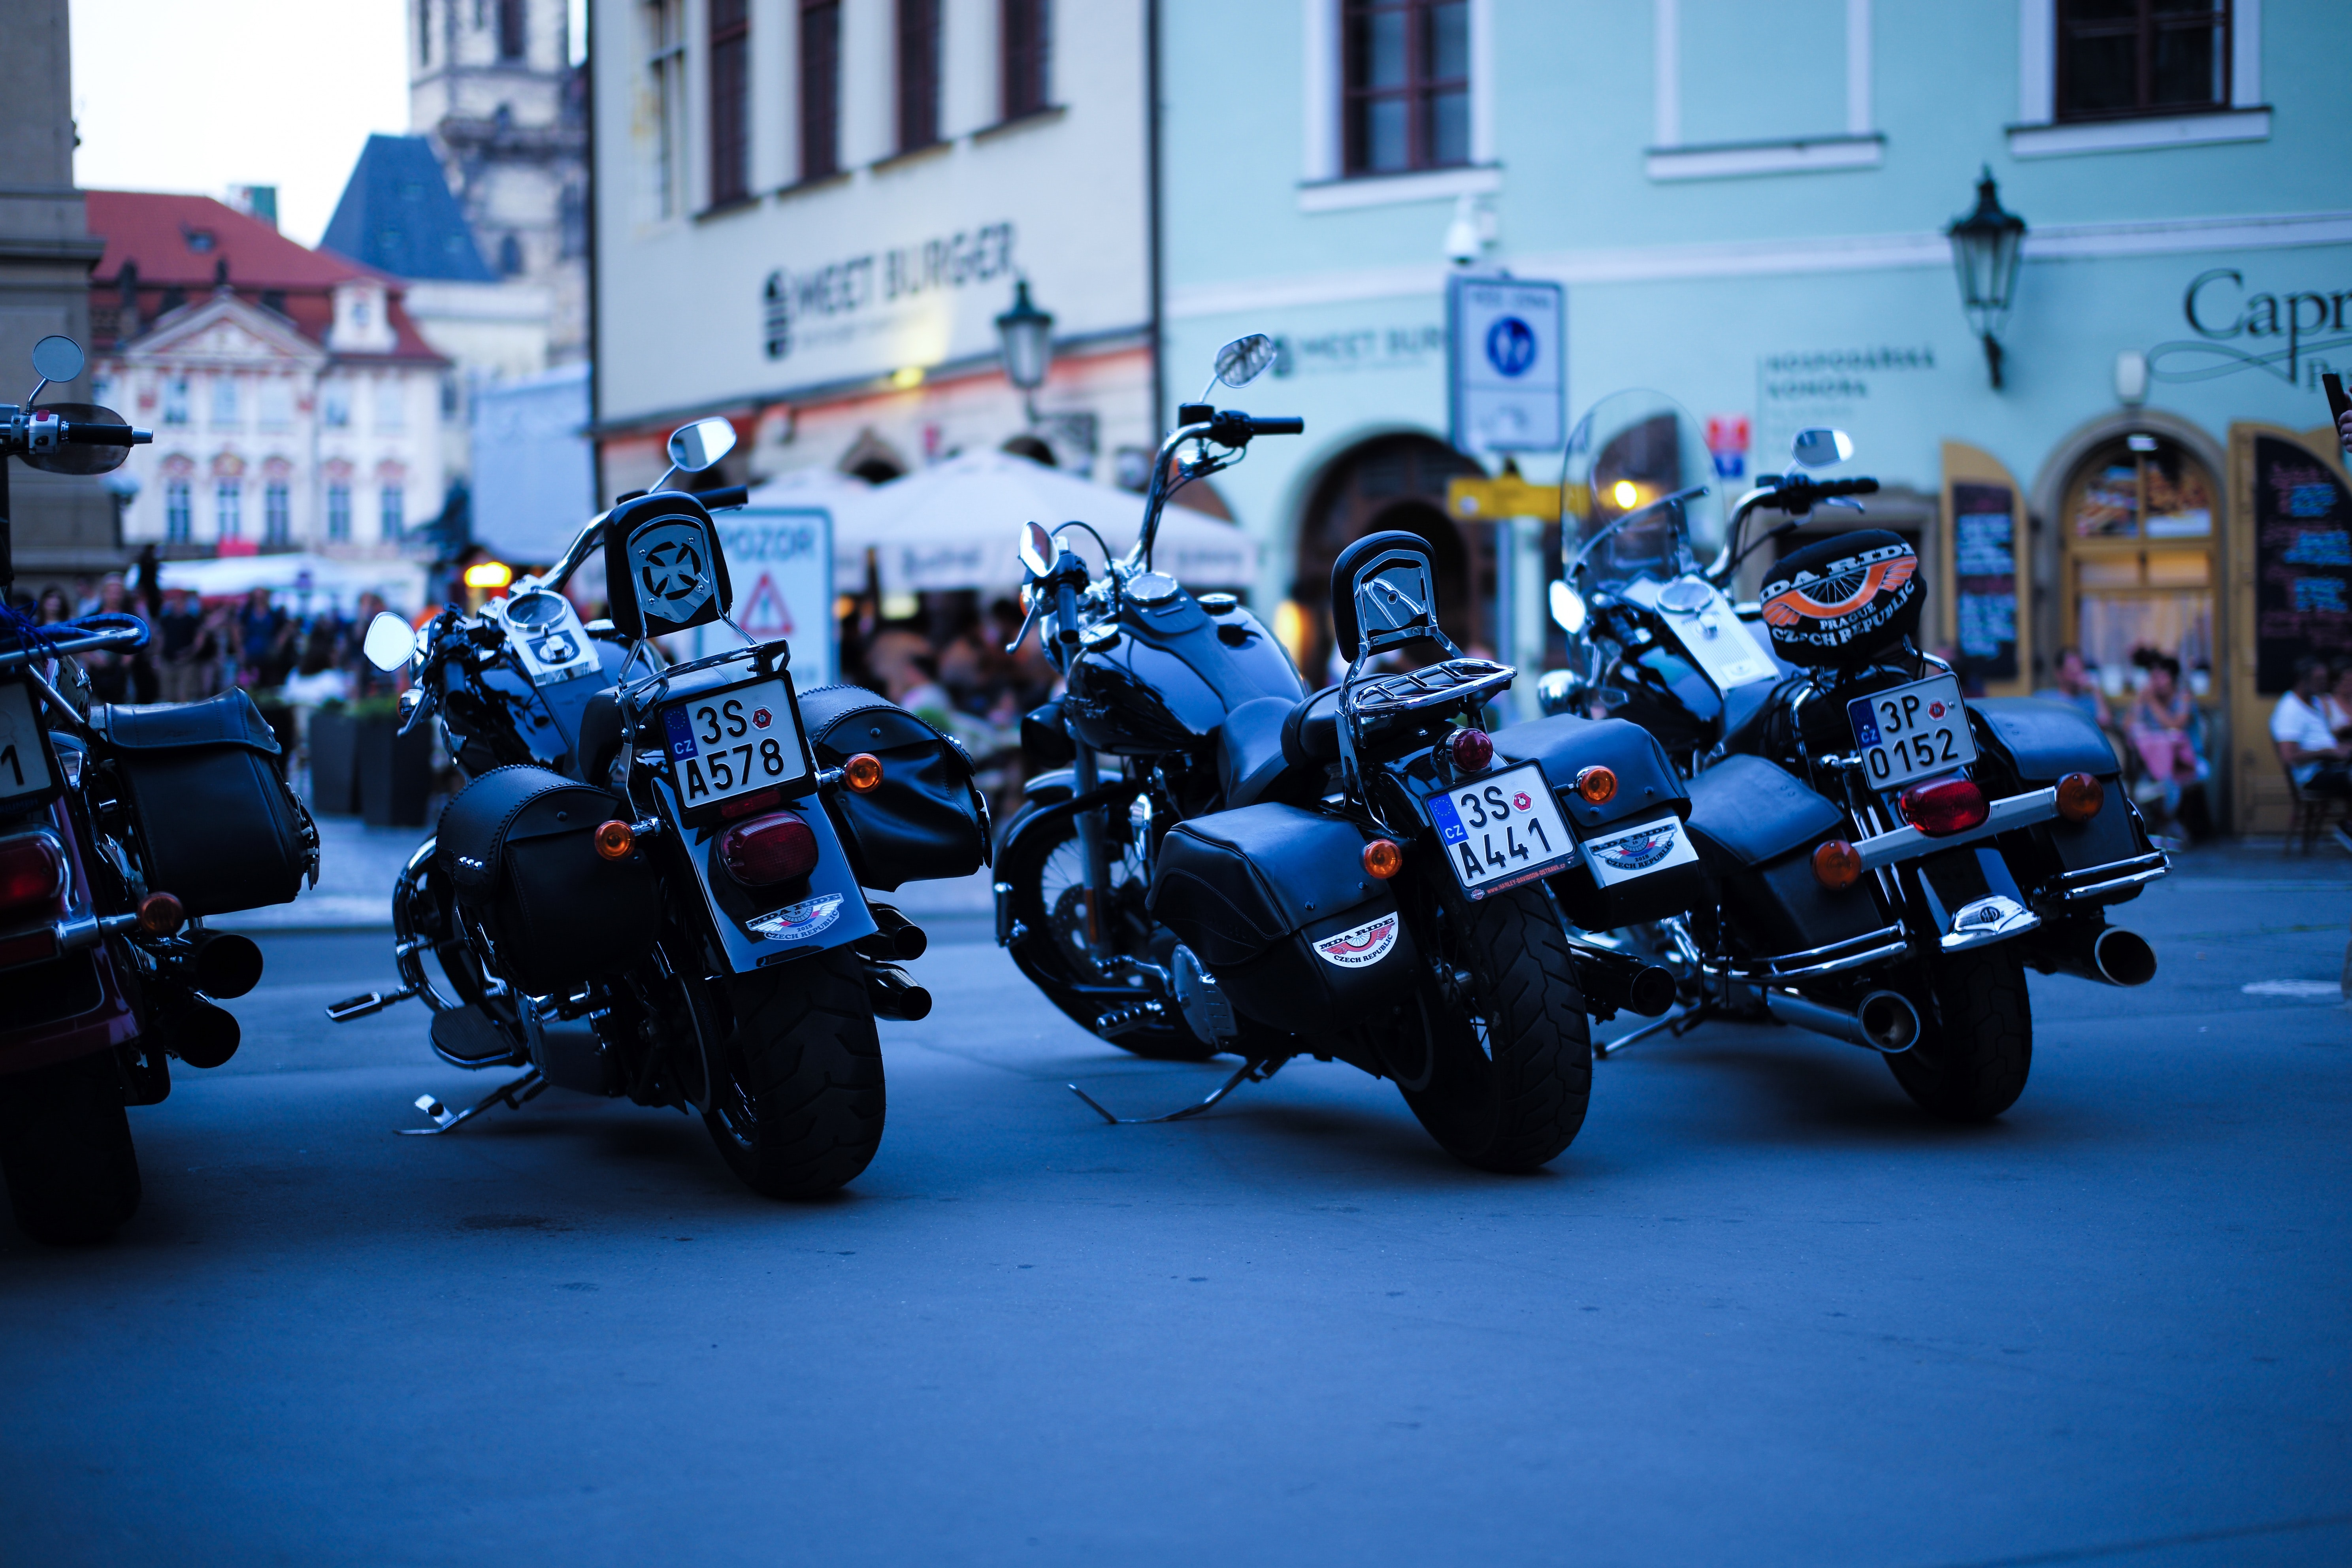 three parked motorcycles